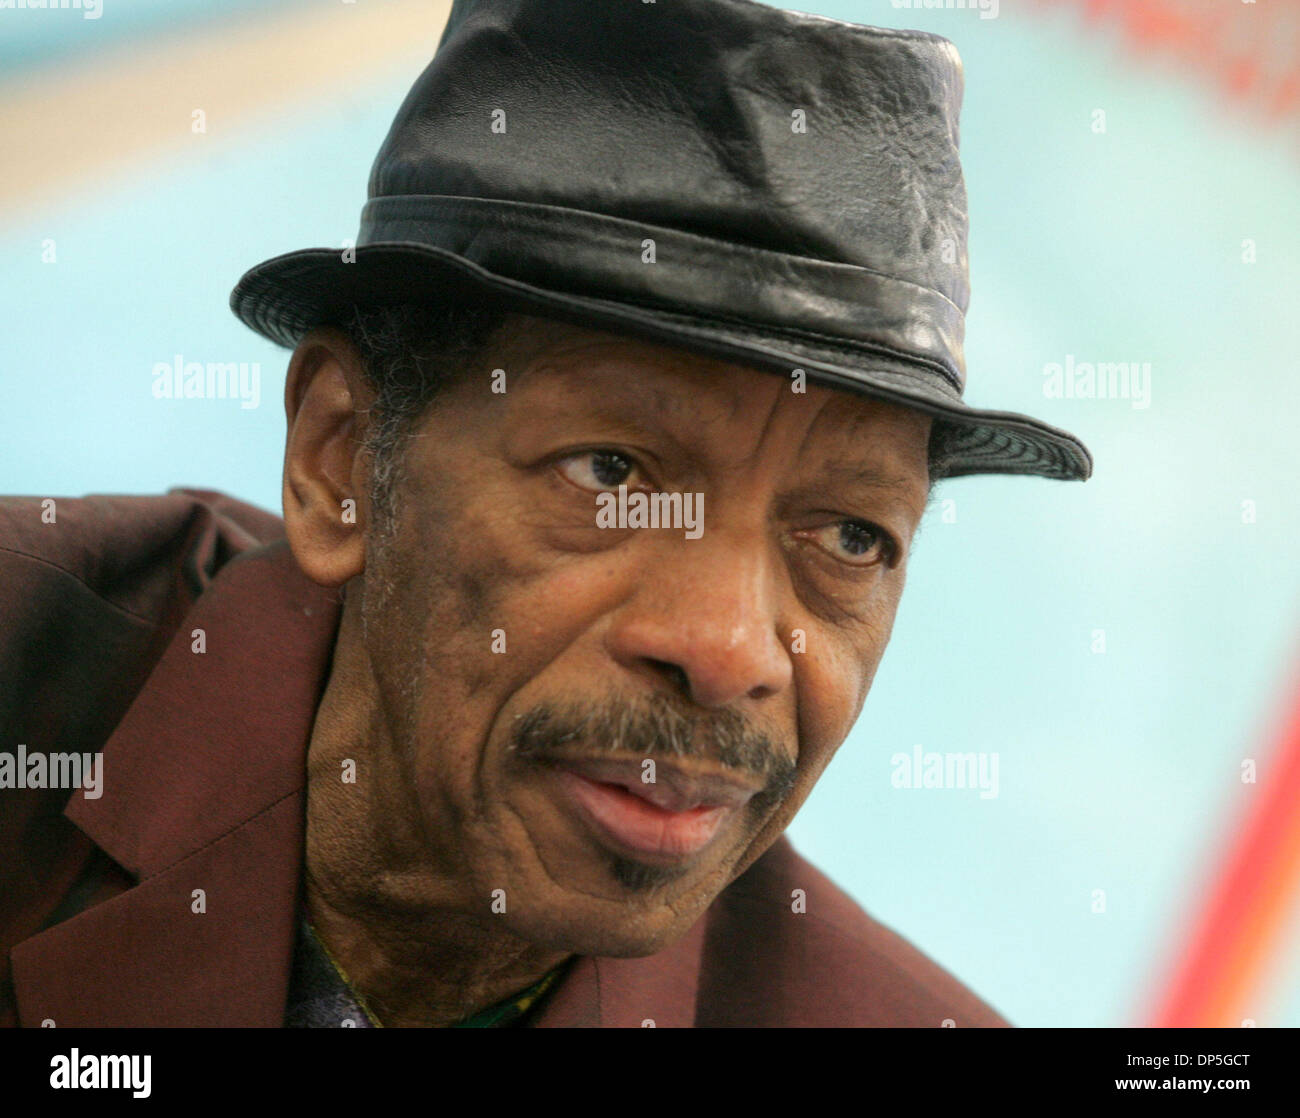 Sep 15, 2006; New York, NY, USA; Free jazz innovator saxophonist ORNETTE COLEMAN promotes his new CD 'Sound Grammar'  his first CD release in ten years at J&R Music and Computer World. Mandatory Credit: Photo by Nancy Kaszerman/ZUMA Press. (©) Copyright 2006 by Nancy Kaszerman - Stock Image